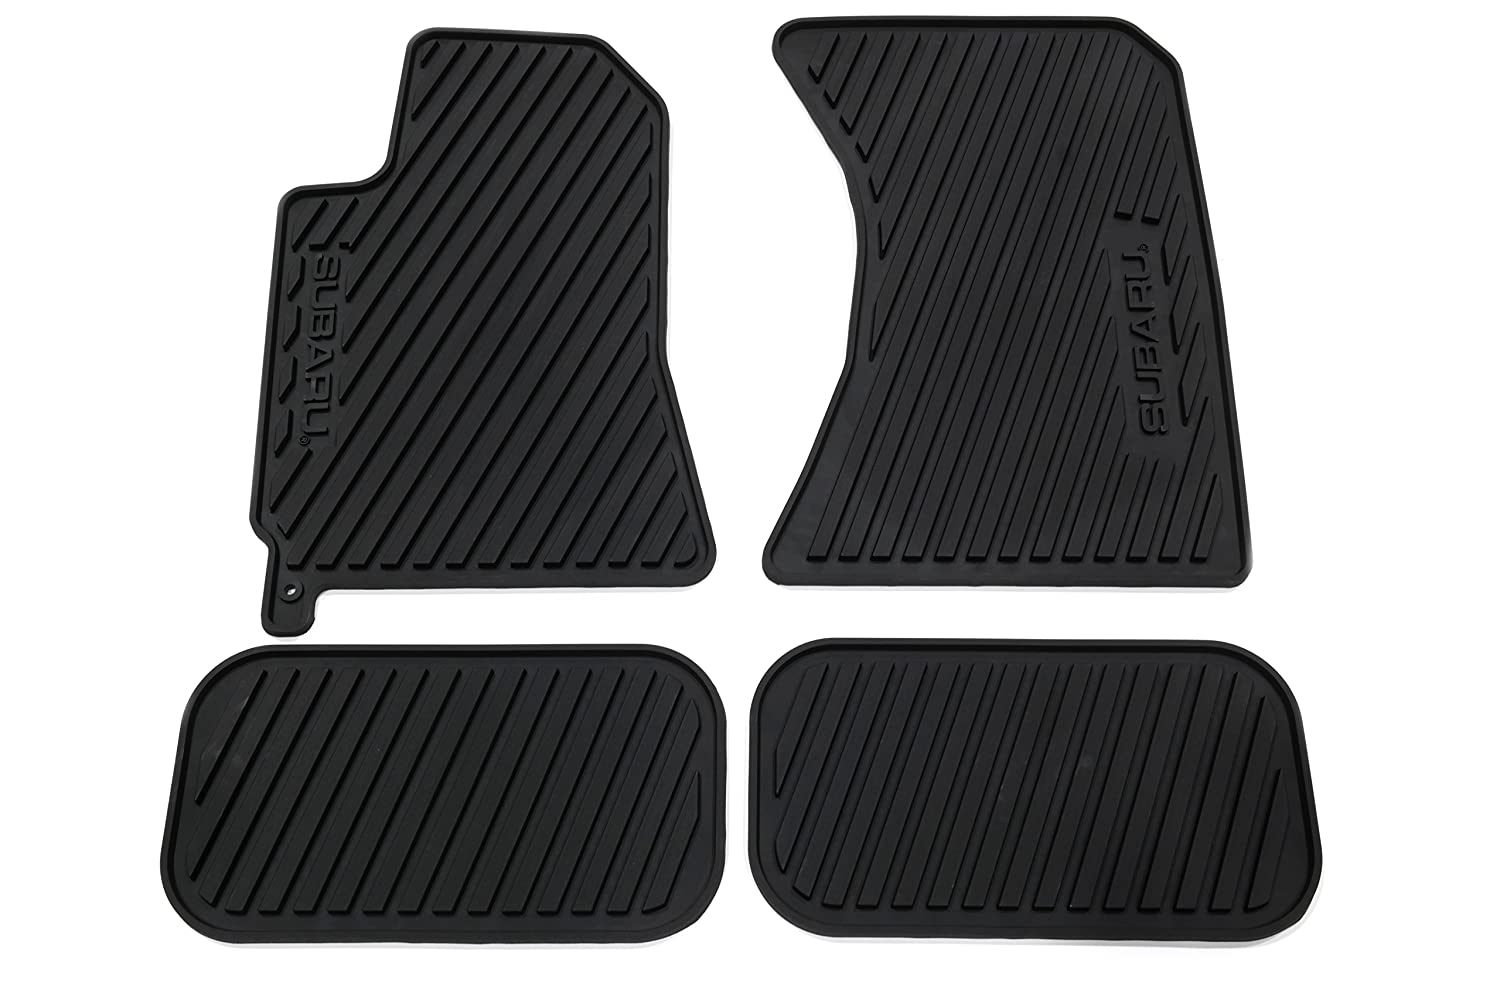 2018 subaru outback all weather floor mats bathroom wall medicine cabinet